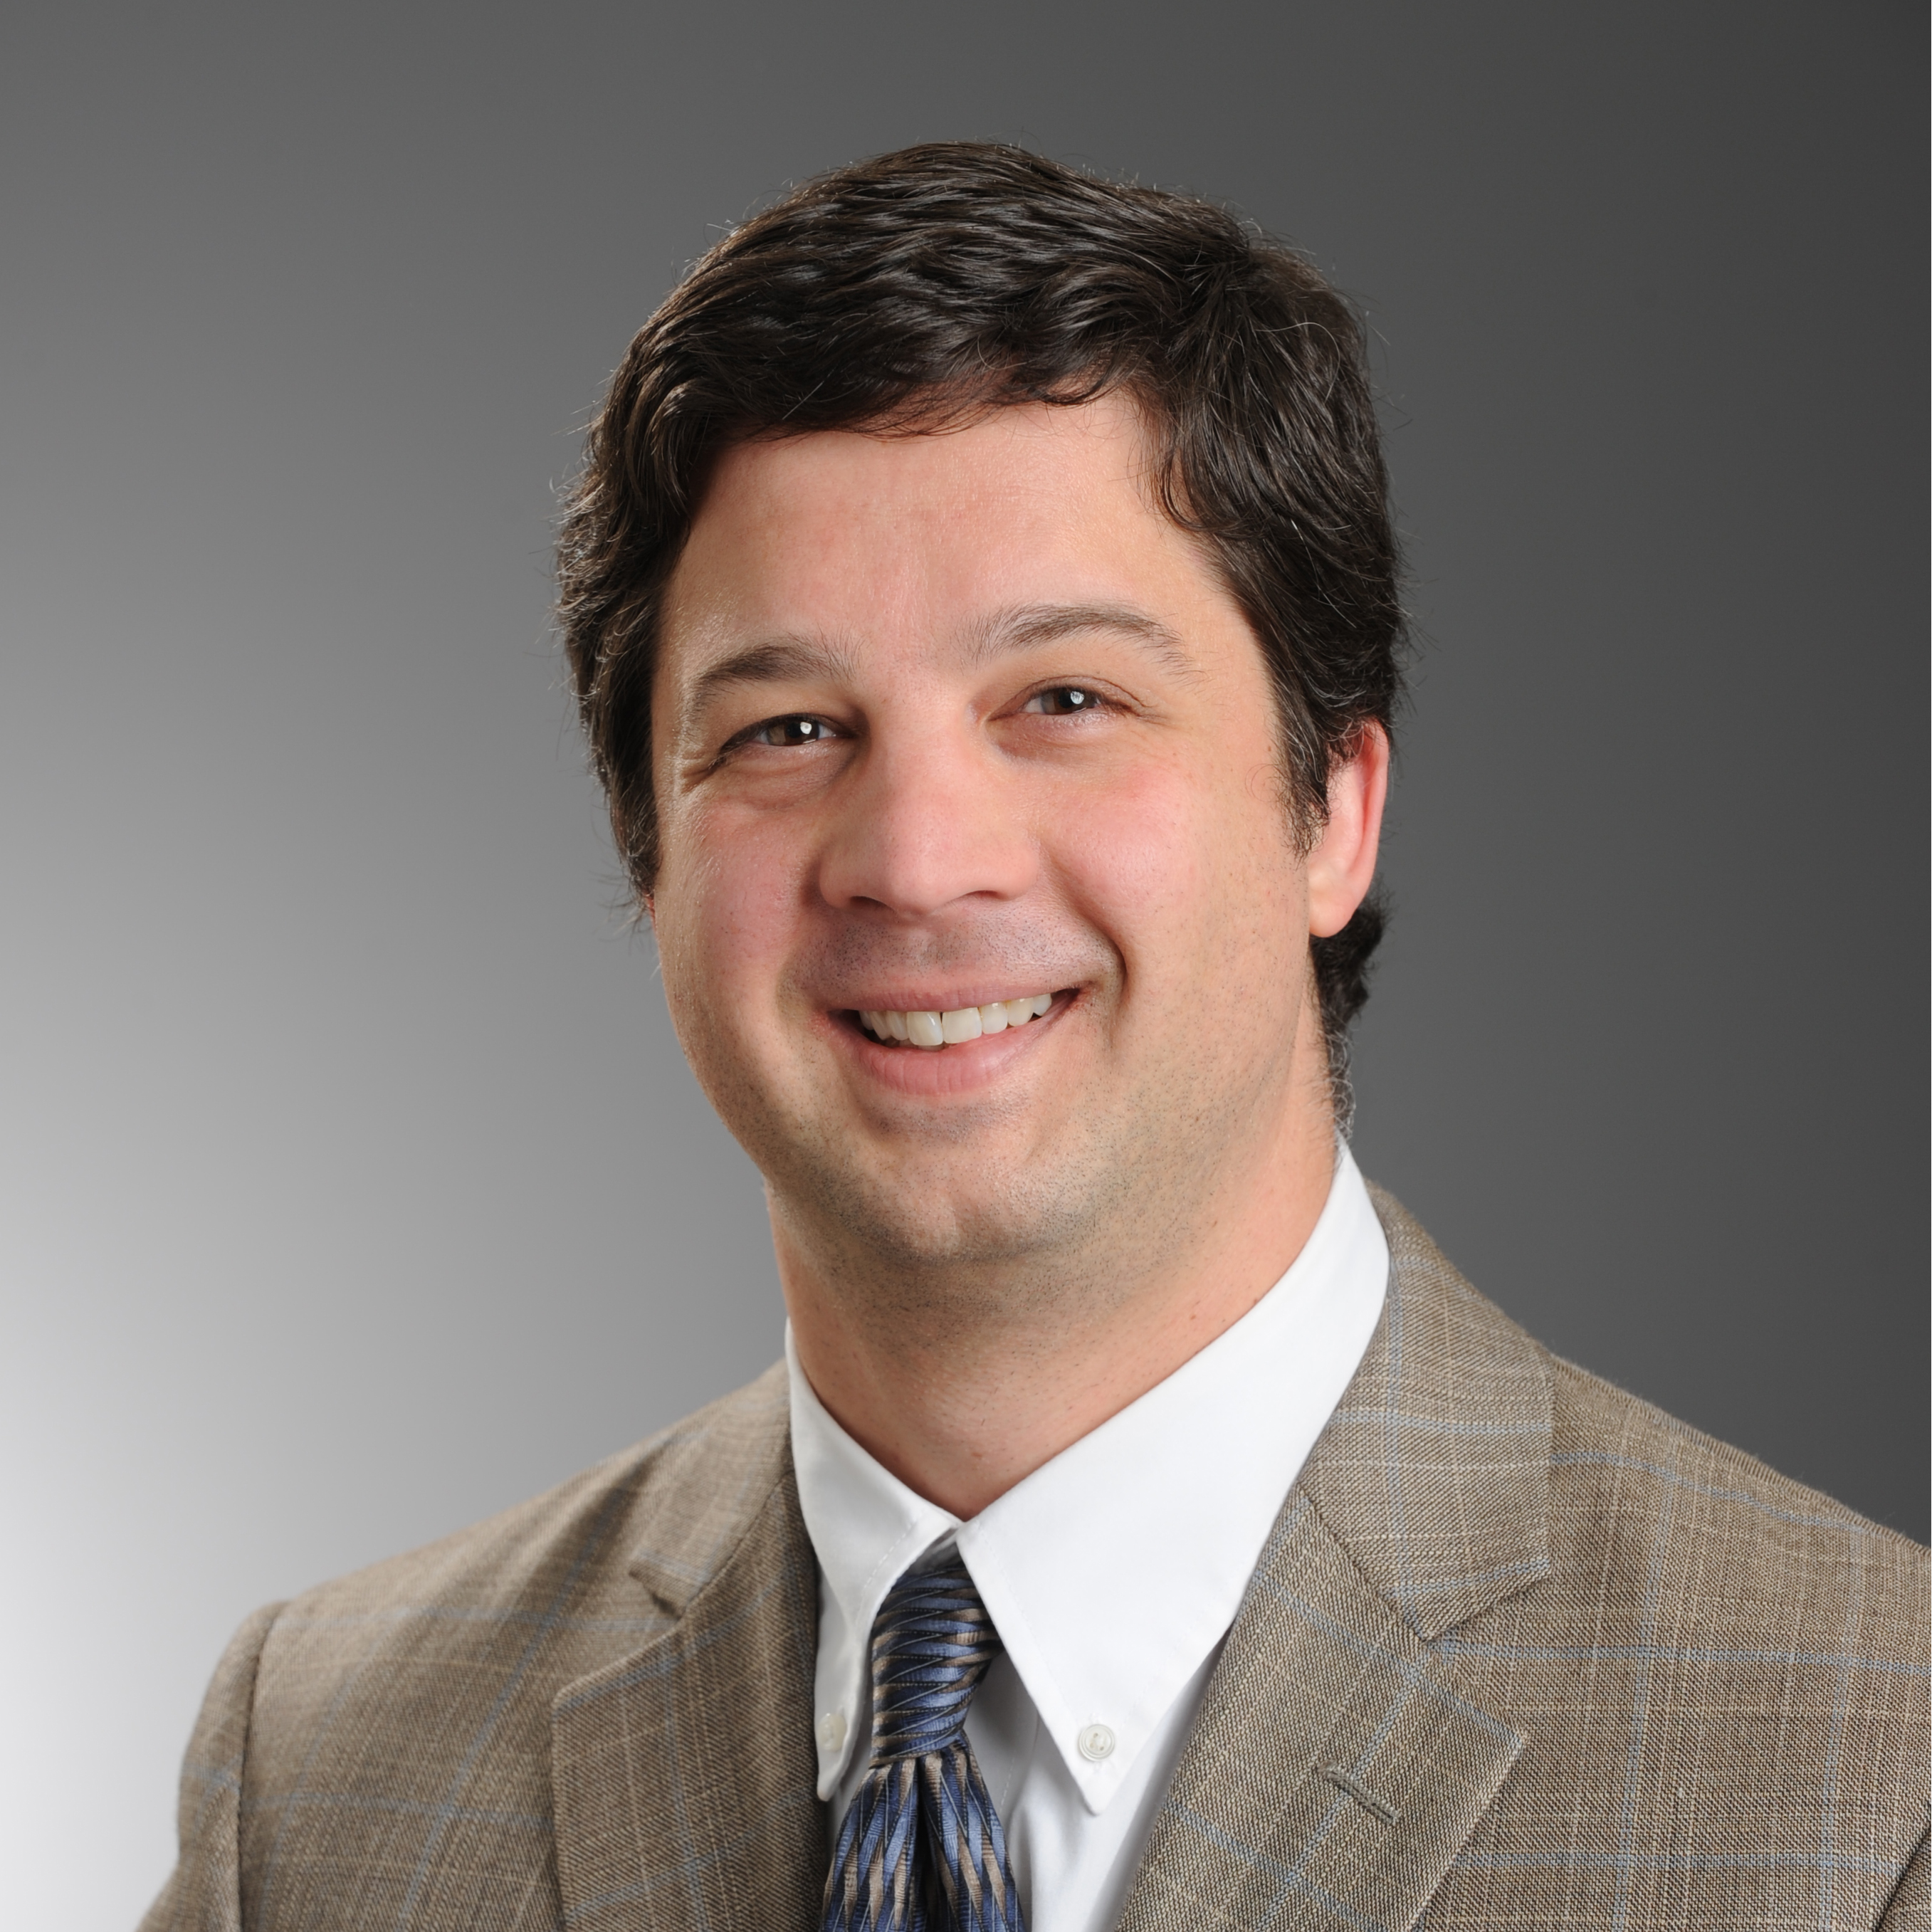 RESI Welcomes Todd Metcalfe